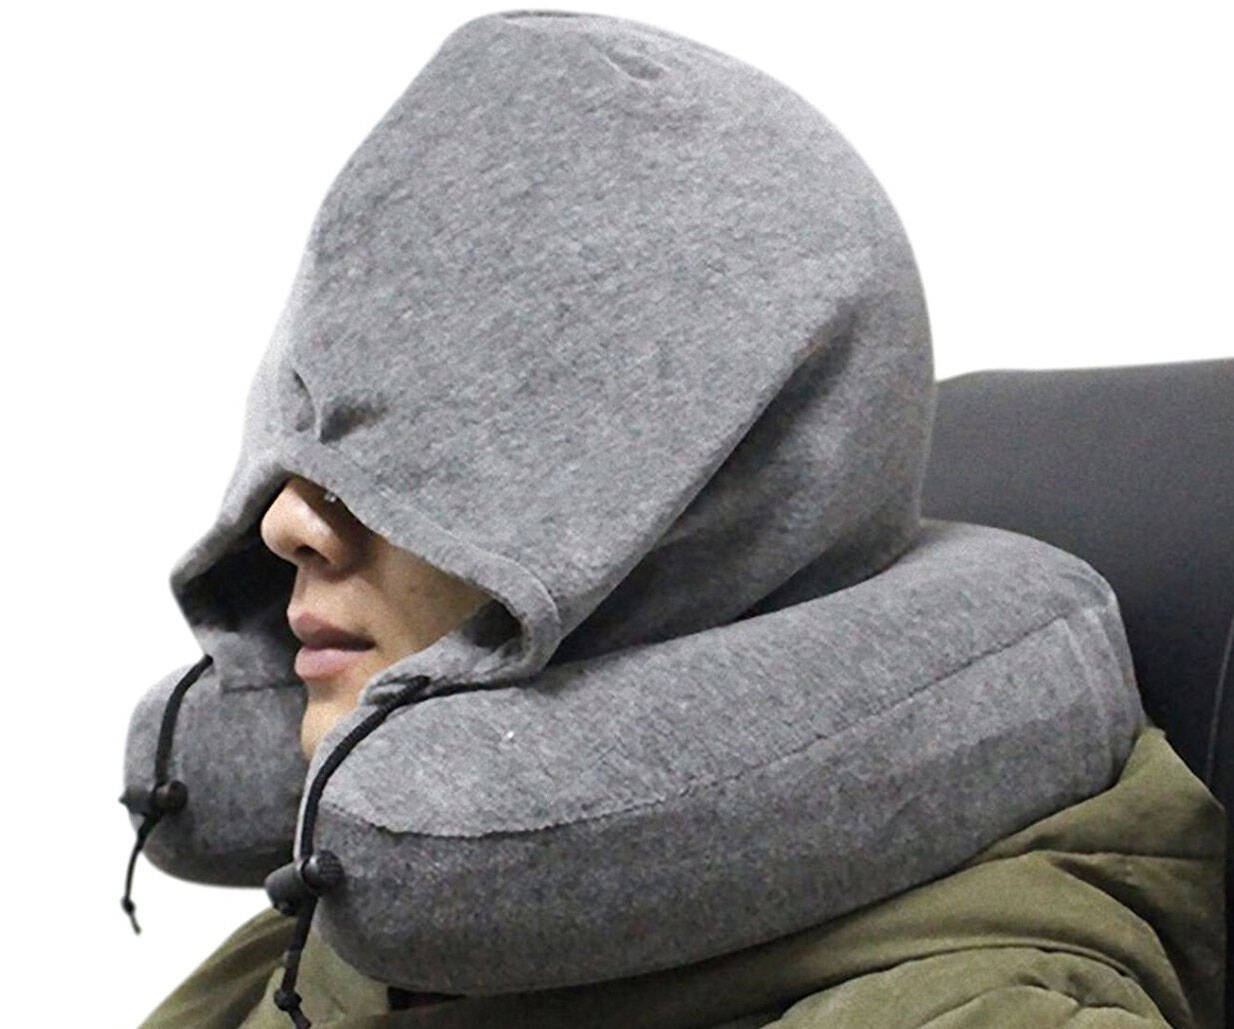 Memory Foam Neck Pillow With Hoodie - http://coolthings.us